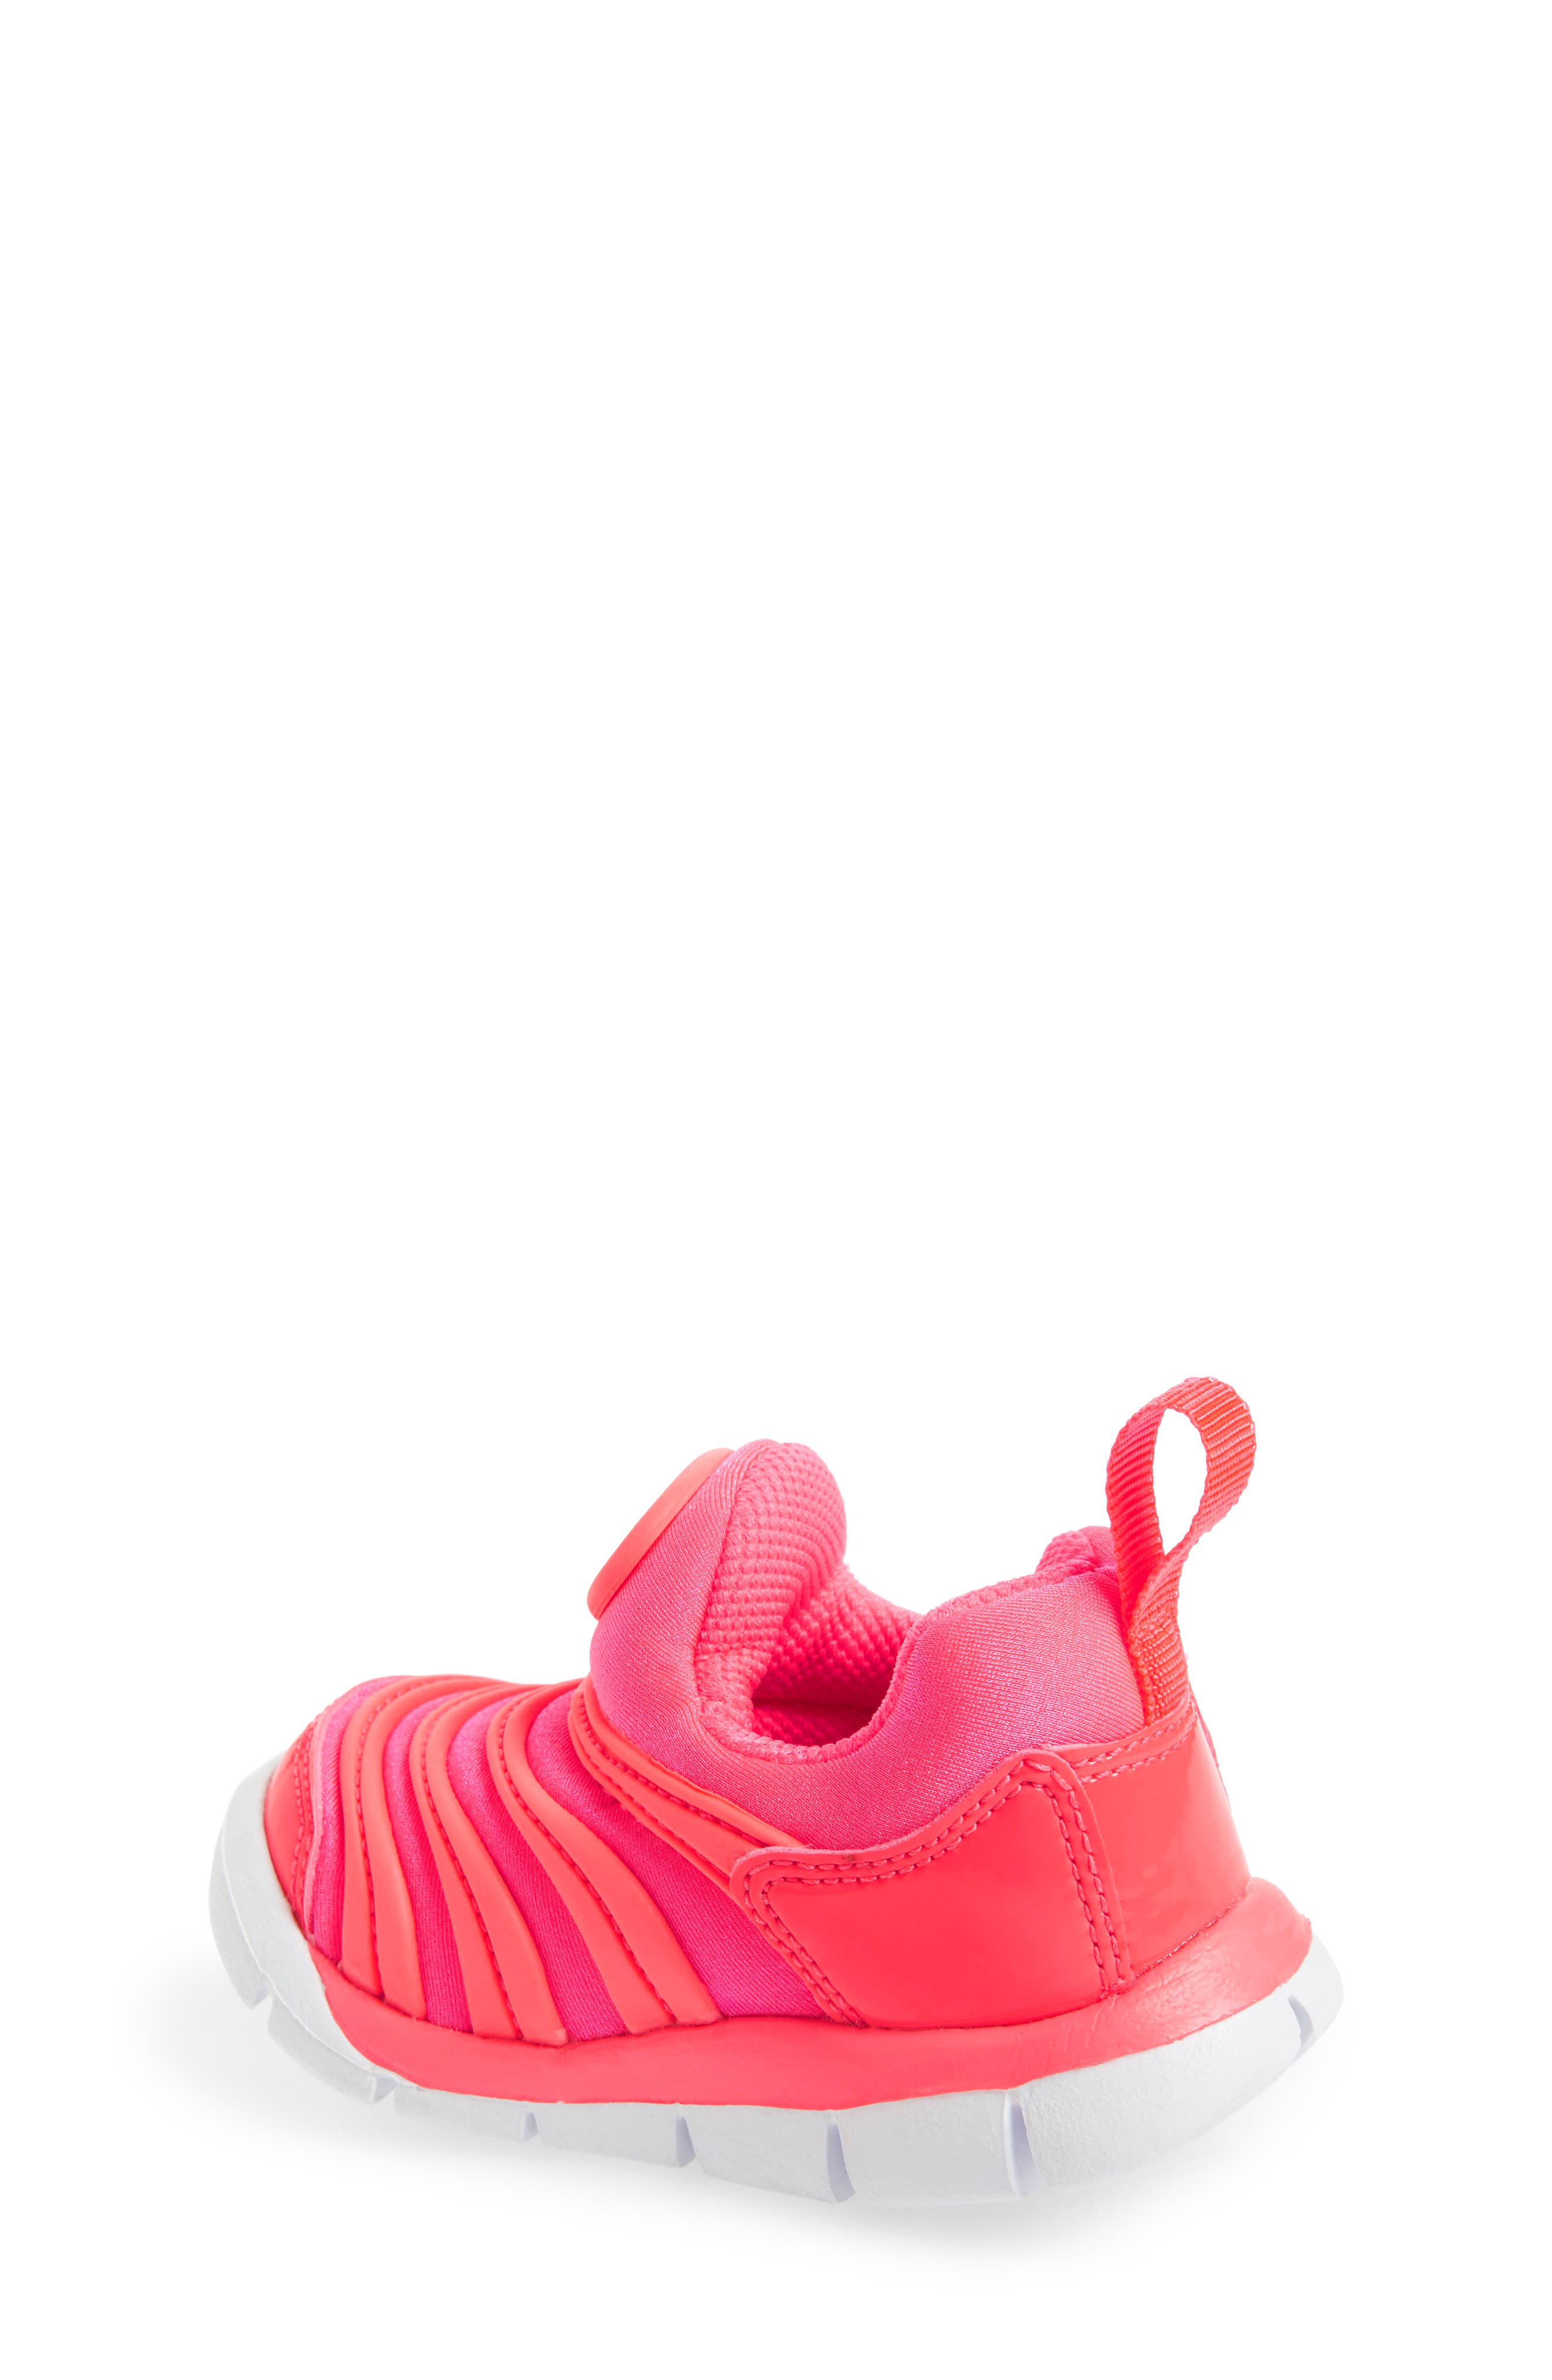 Dynamo Free Sneaker,                             Alternate thumbnail 2, color,                             Racer Pink/ Silver/ Hot Punch